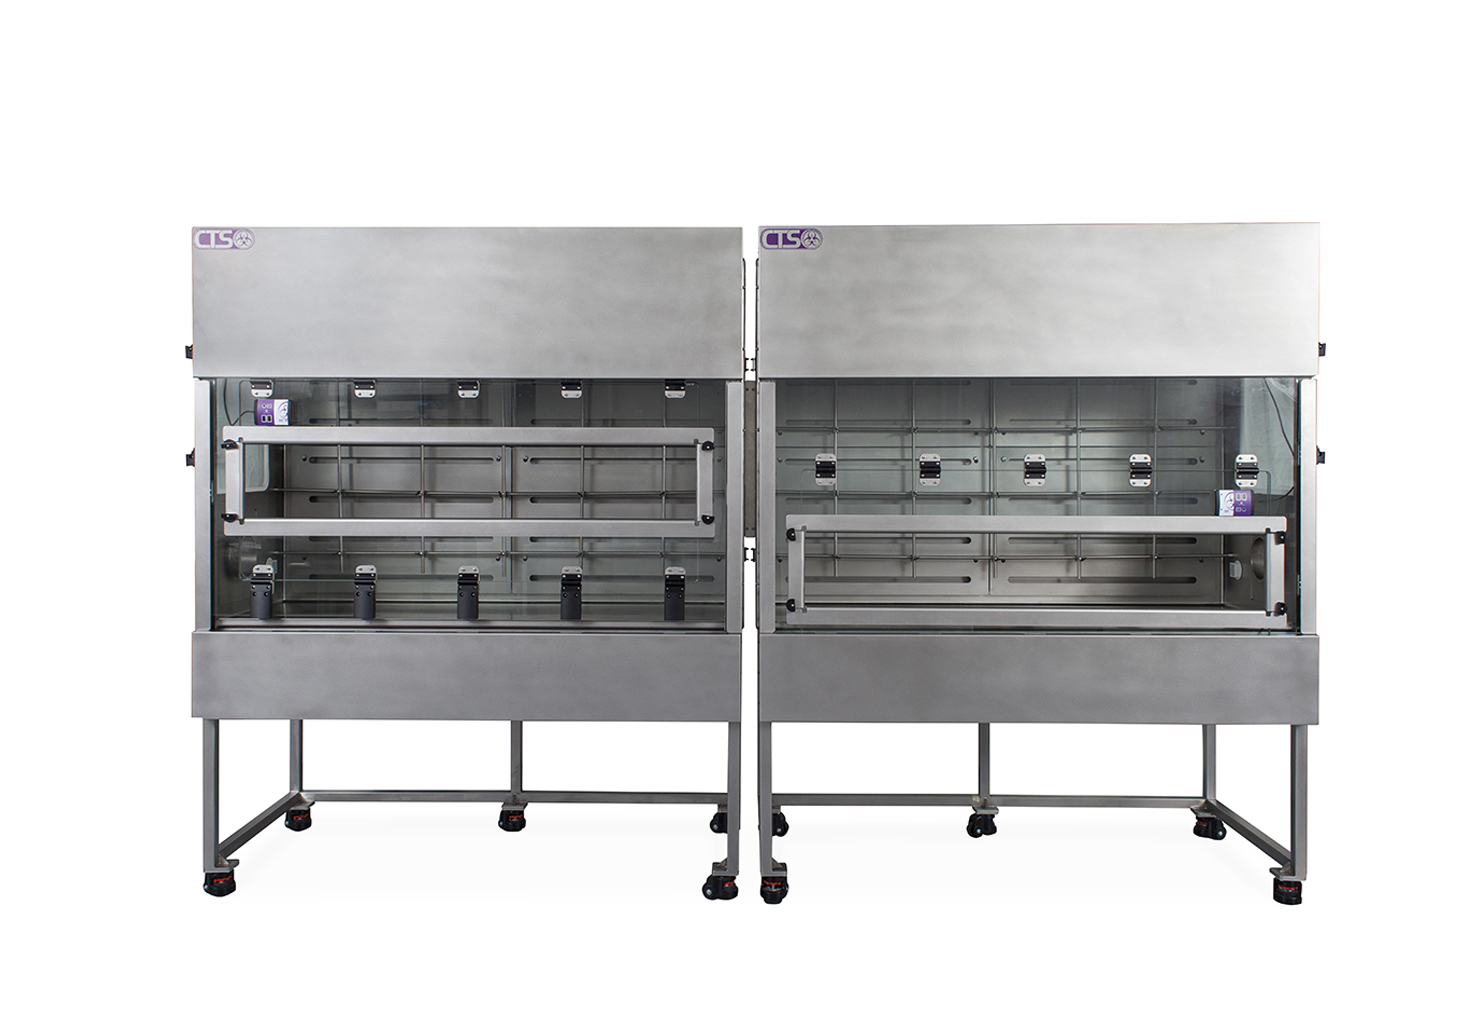 Stainless steel laboratory process containment enclosure for potency drugs